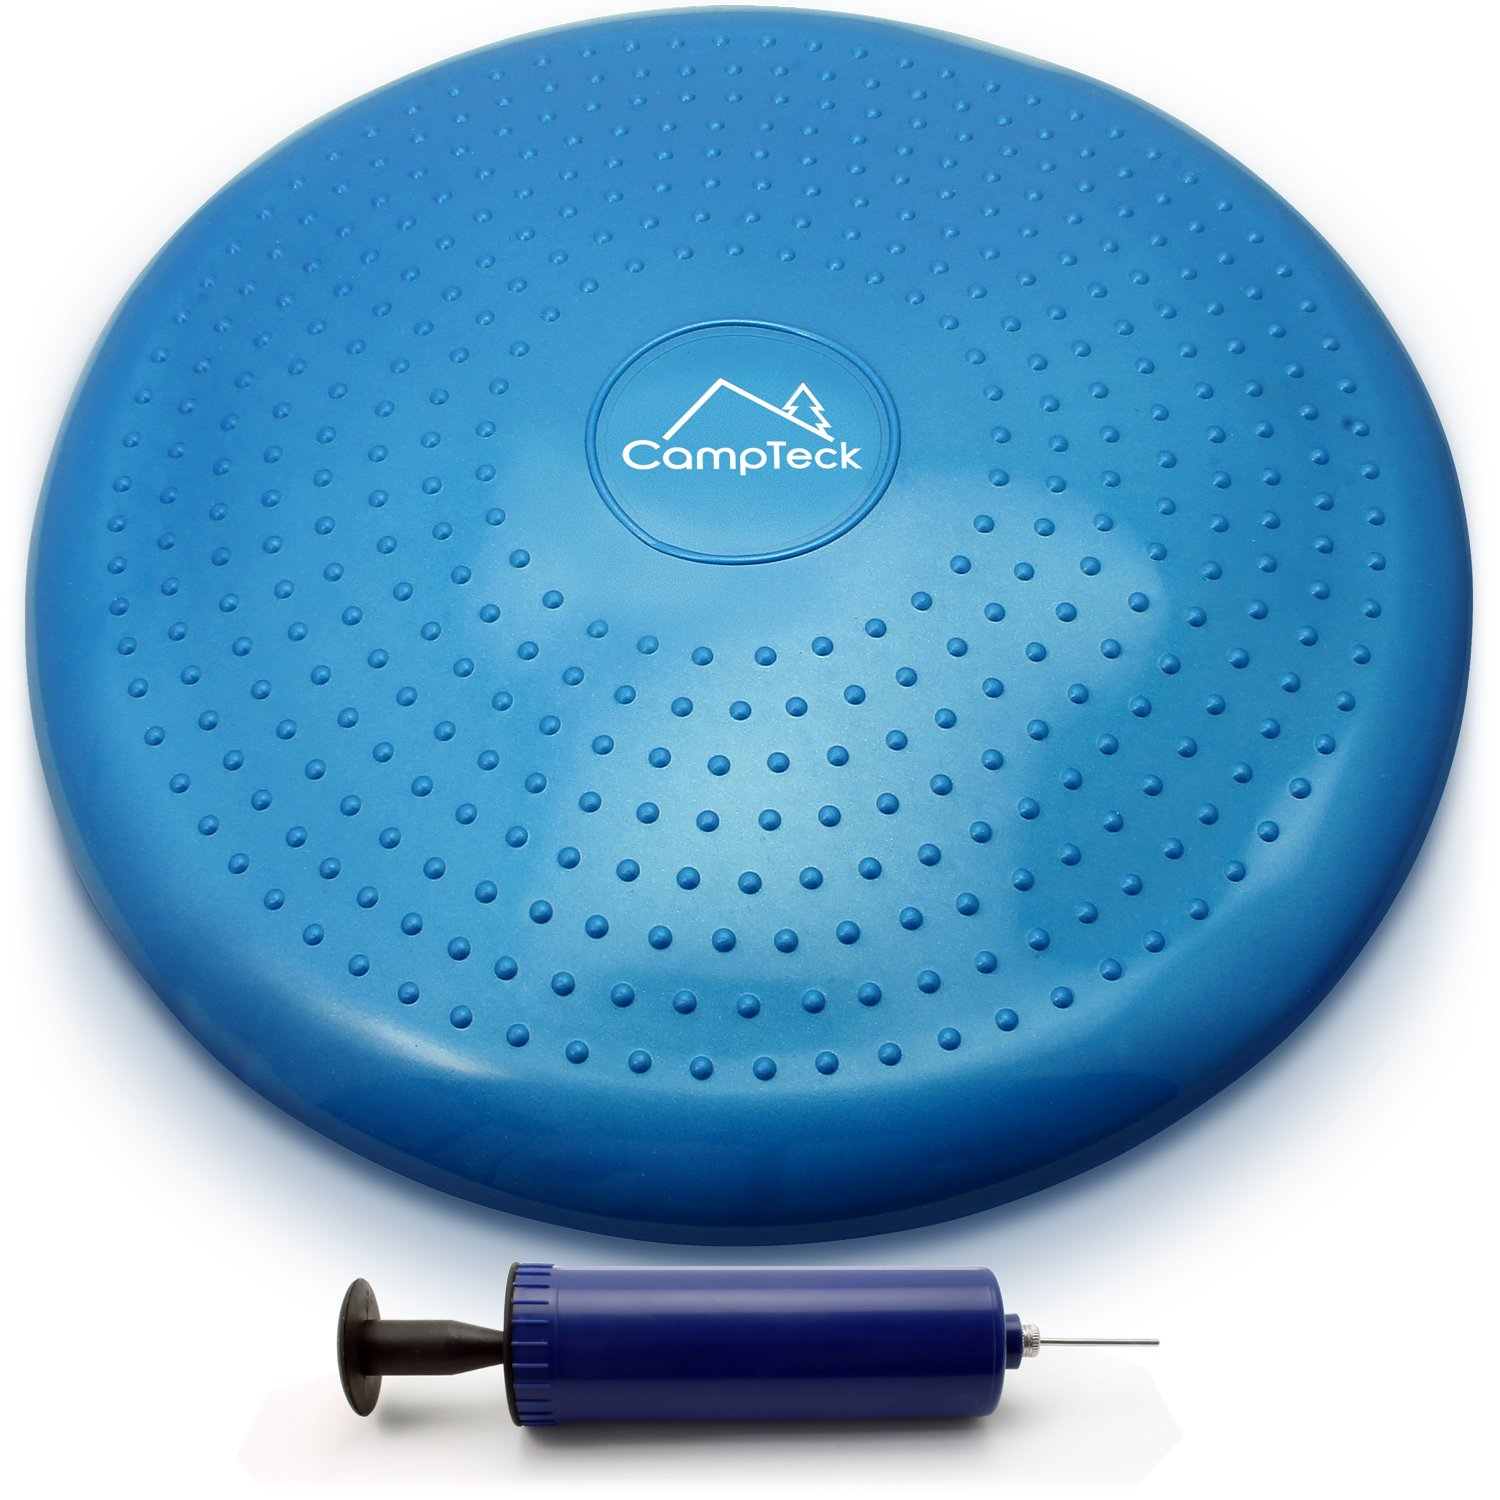 CampTeck U6765 Air Stability Wobble Cushion Inflatable Balance Cushion Board with Improved Hand Pump for Core Training, Agility, Gym Workouts, Yoga, Comfortable Sitting etc – Blue, 32cm